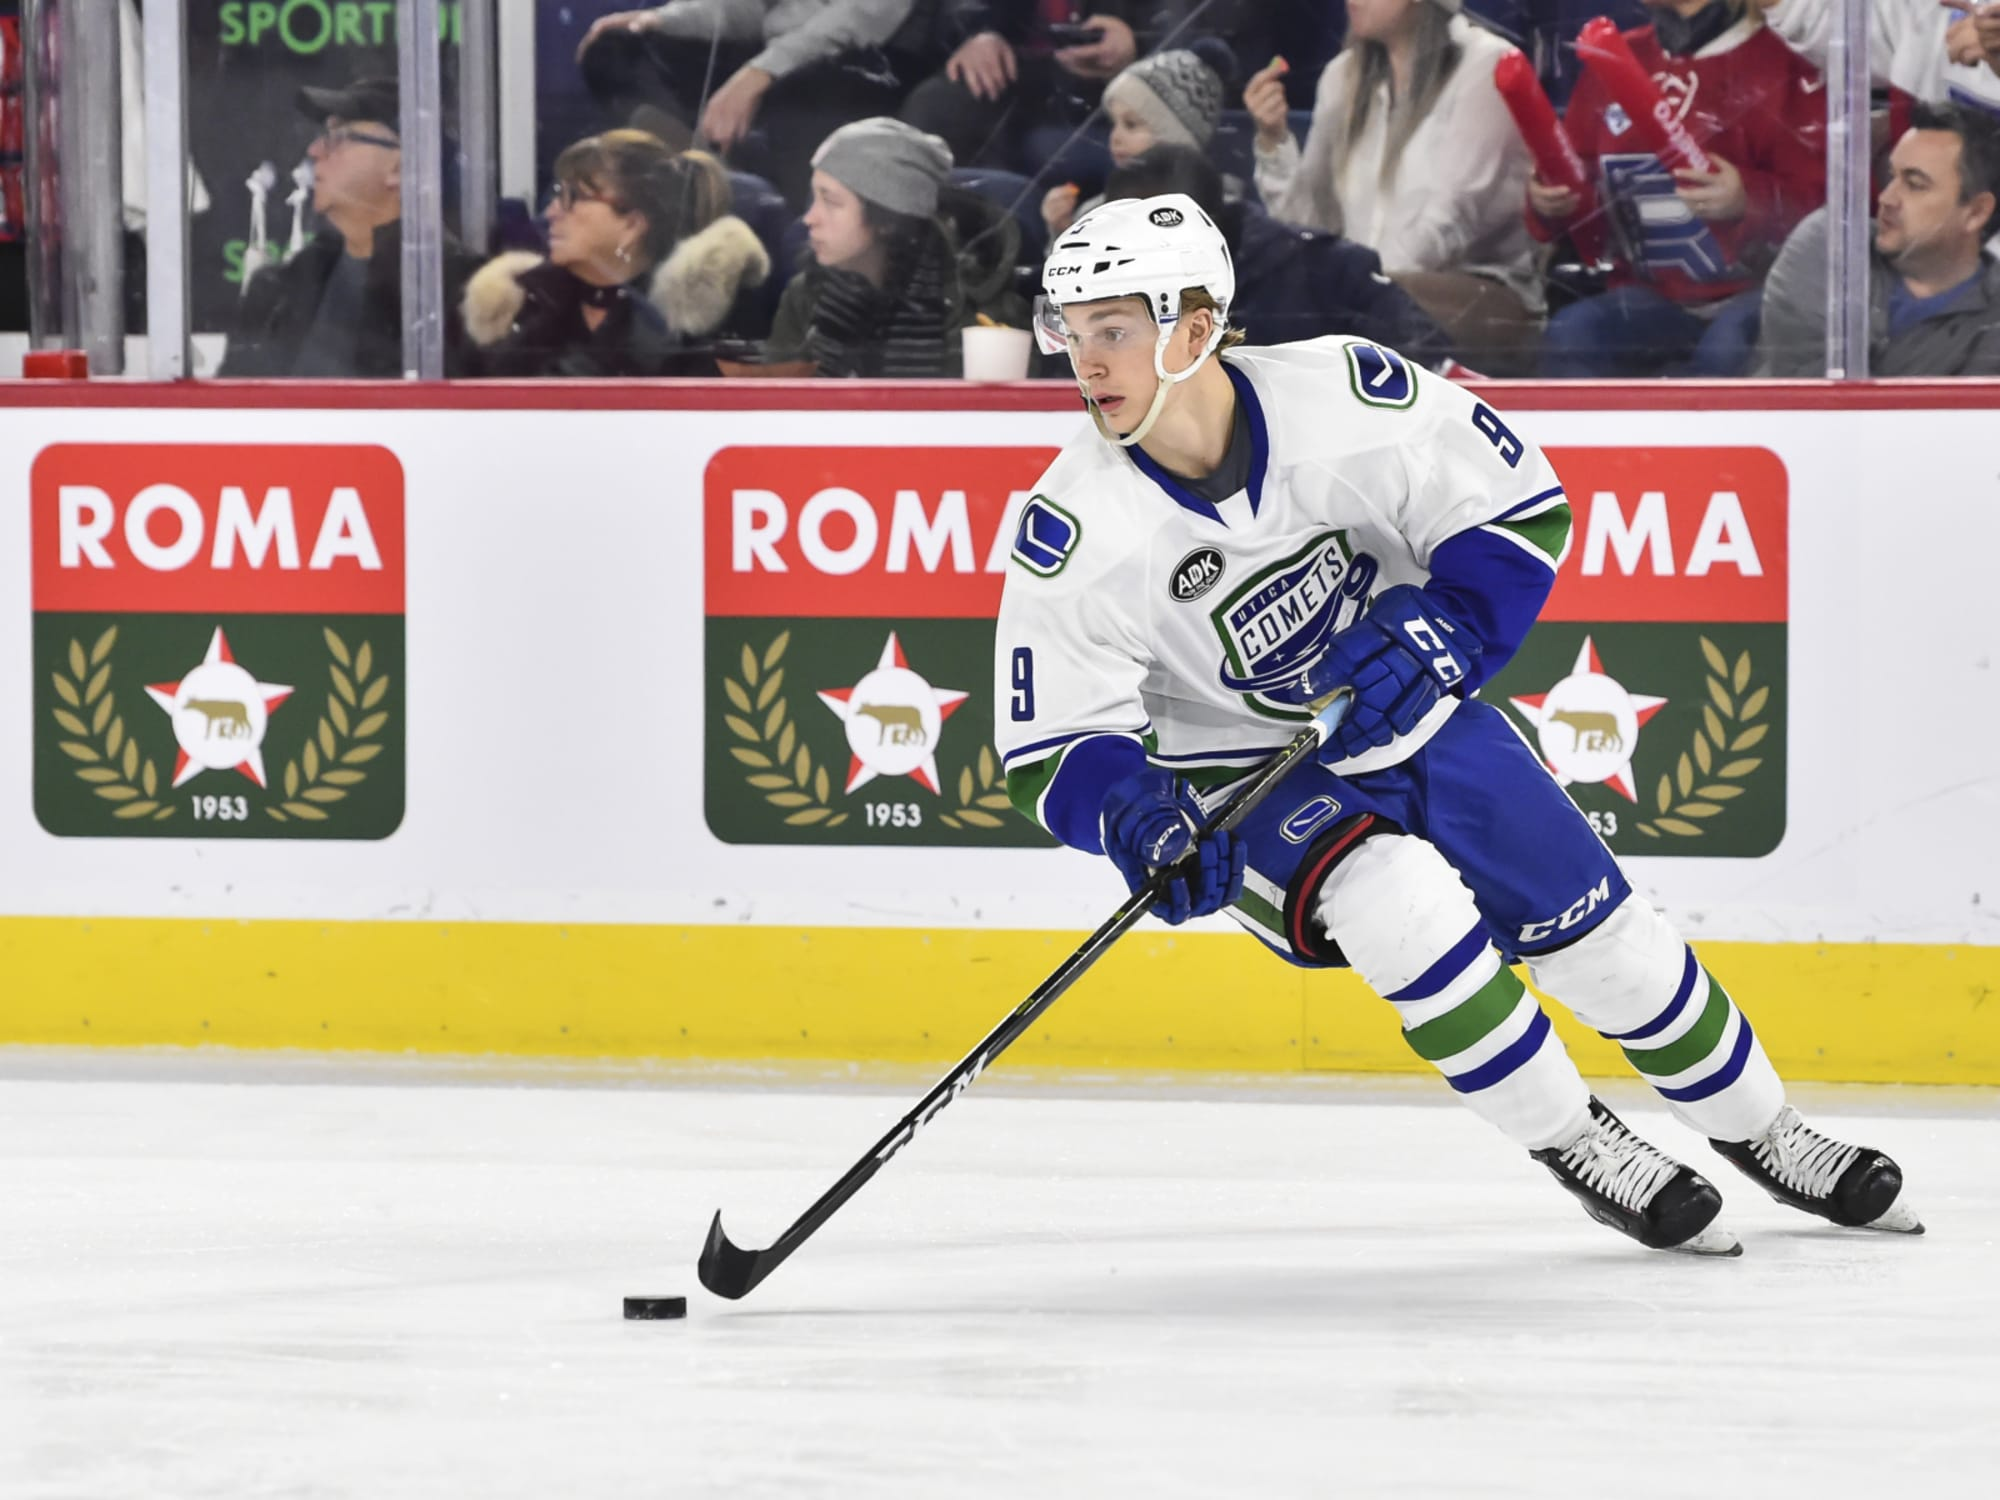 Canucks: Prospect Lukas Jacek to play in Finland next year